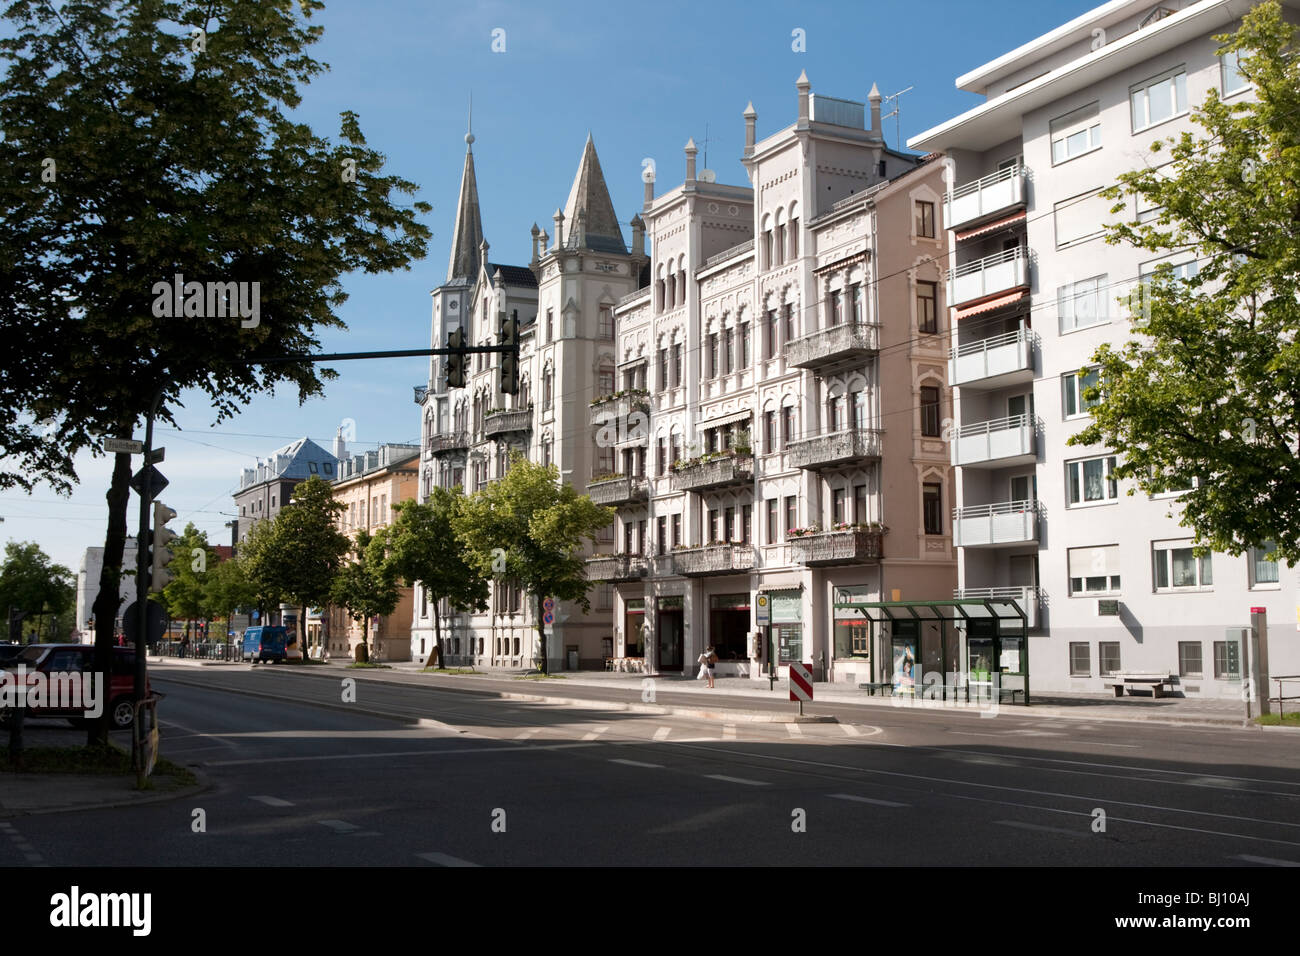 Street scene and Buildings FrolichStrabe Augsburg Germany - Stock Image